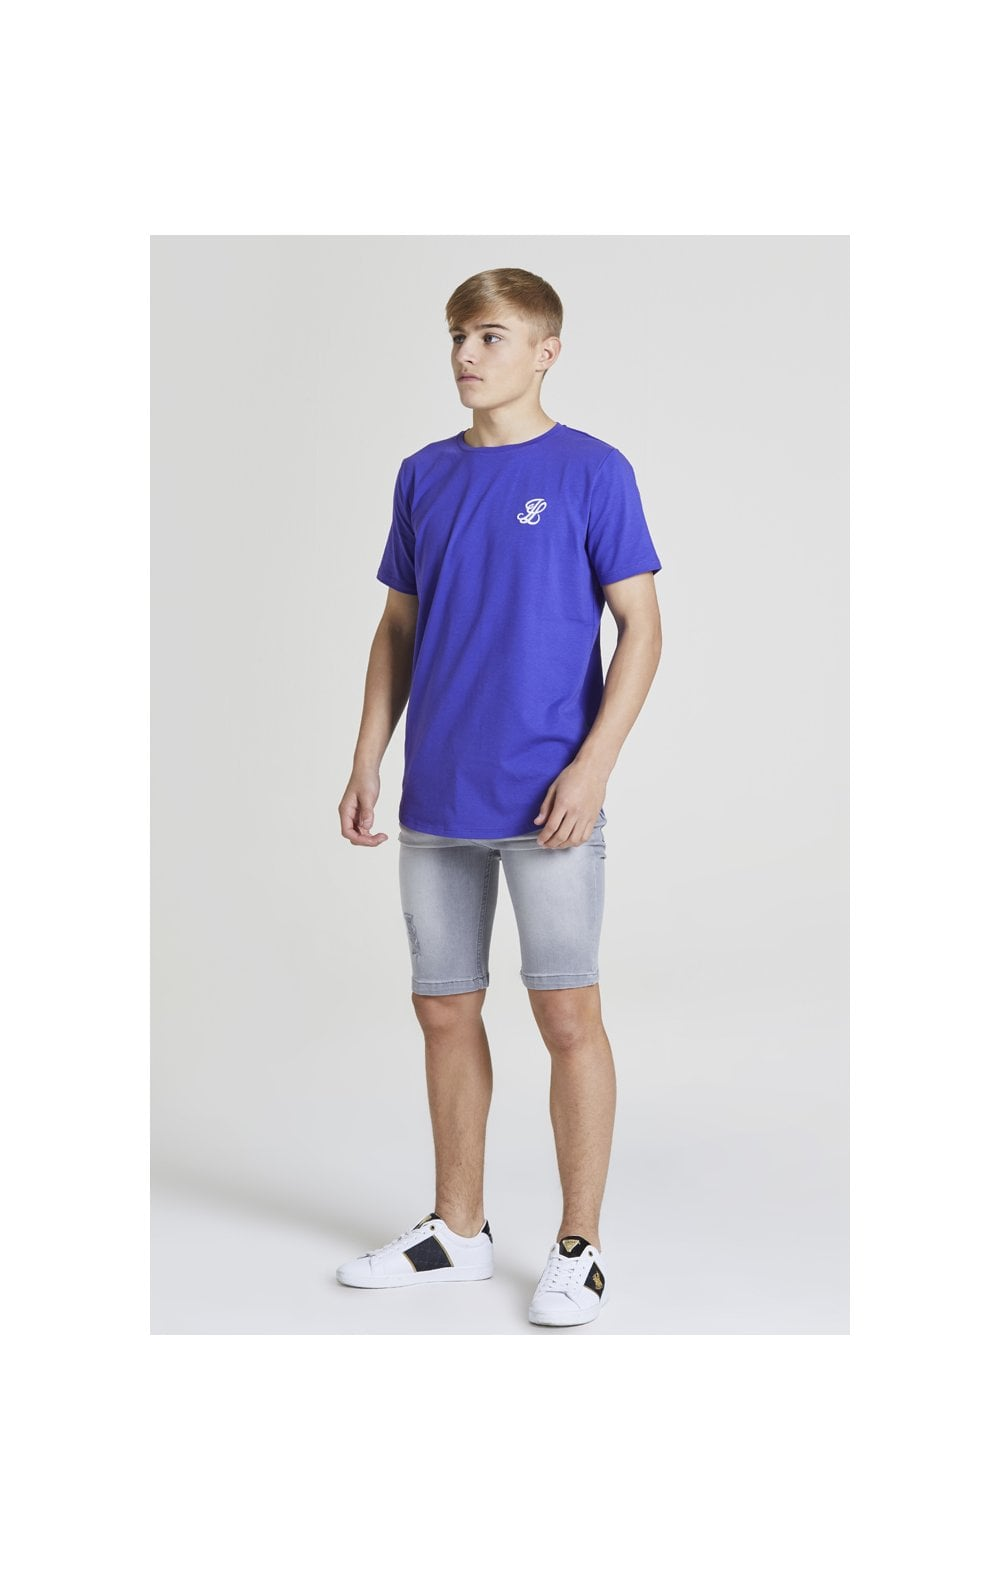 Illusive London Core Tee - Purple (2)